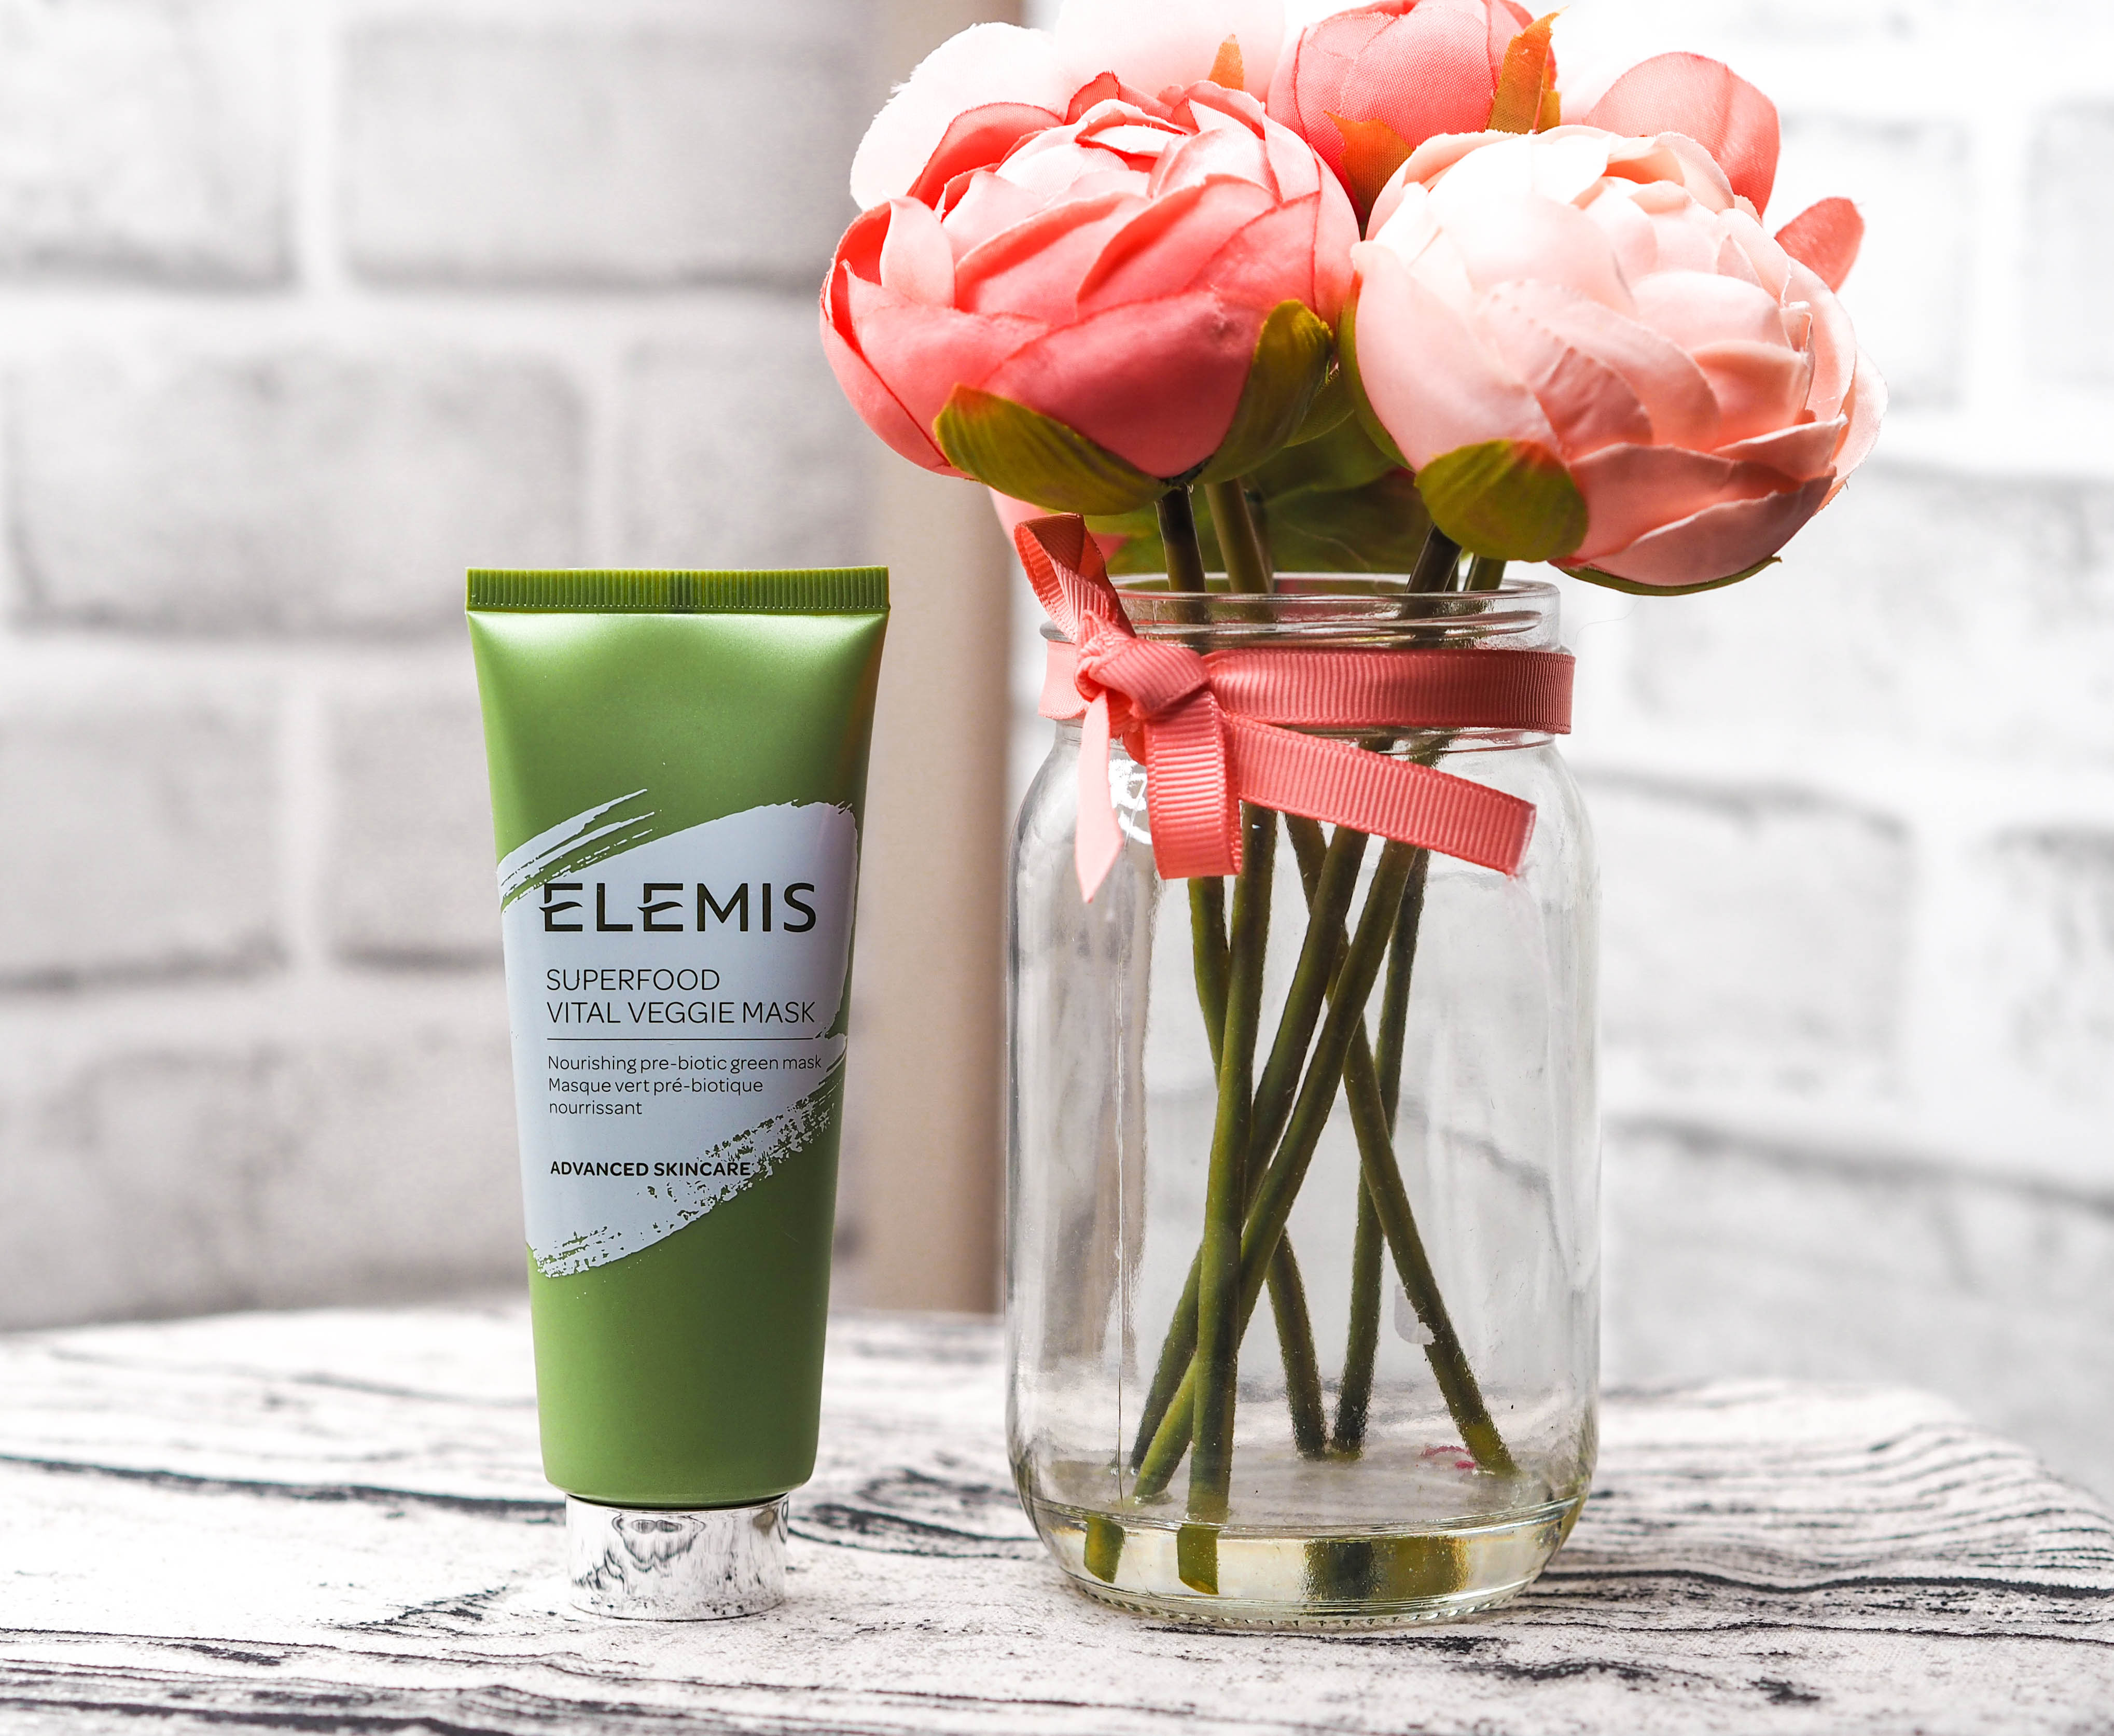 Elemis Superfood Vital Veggies Mask Review